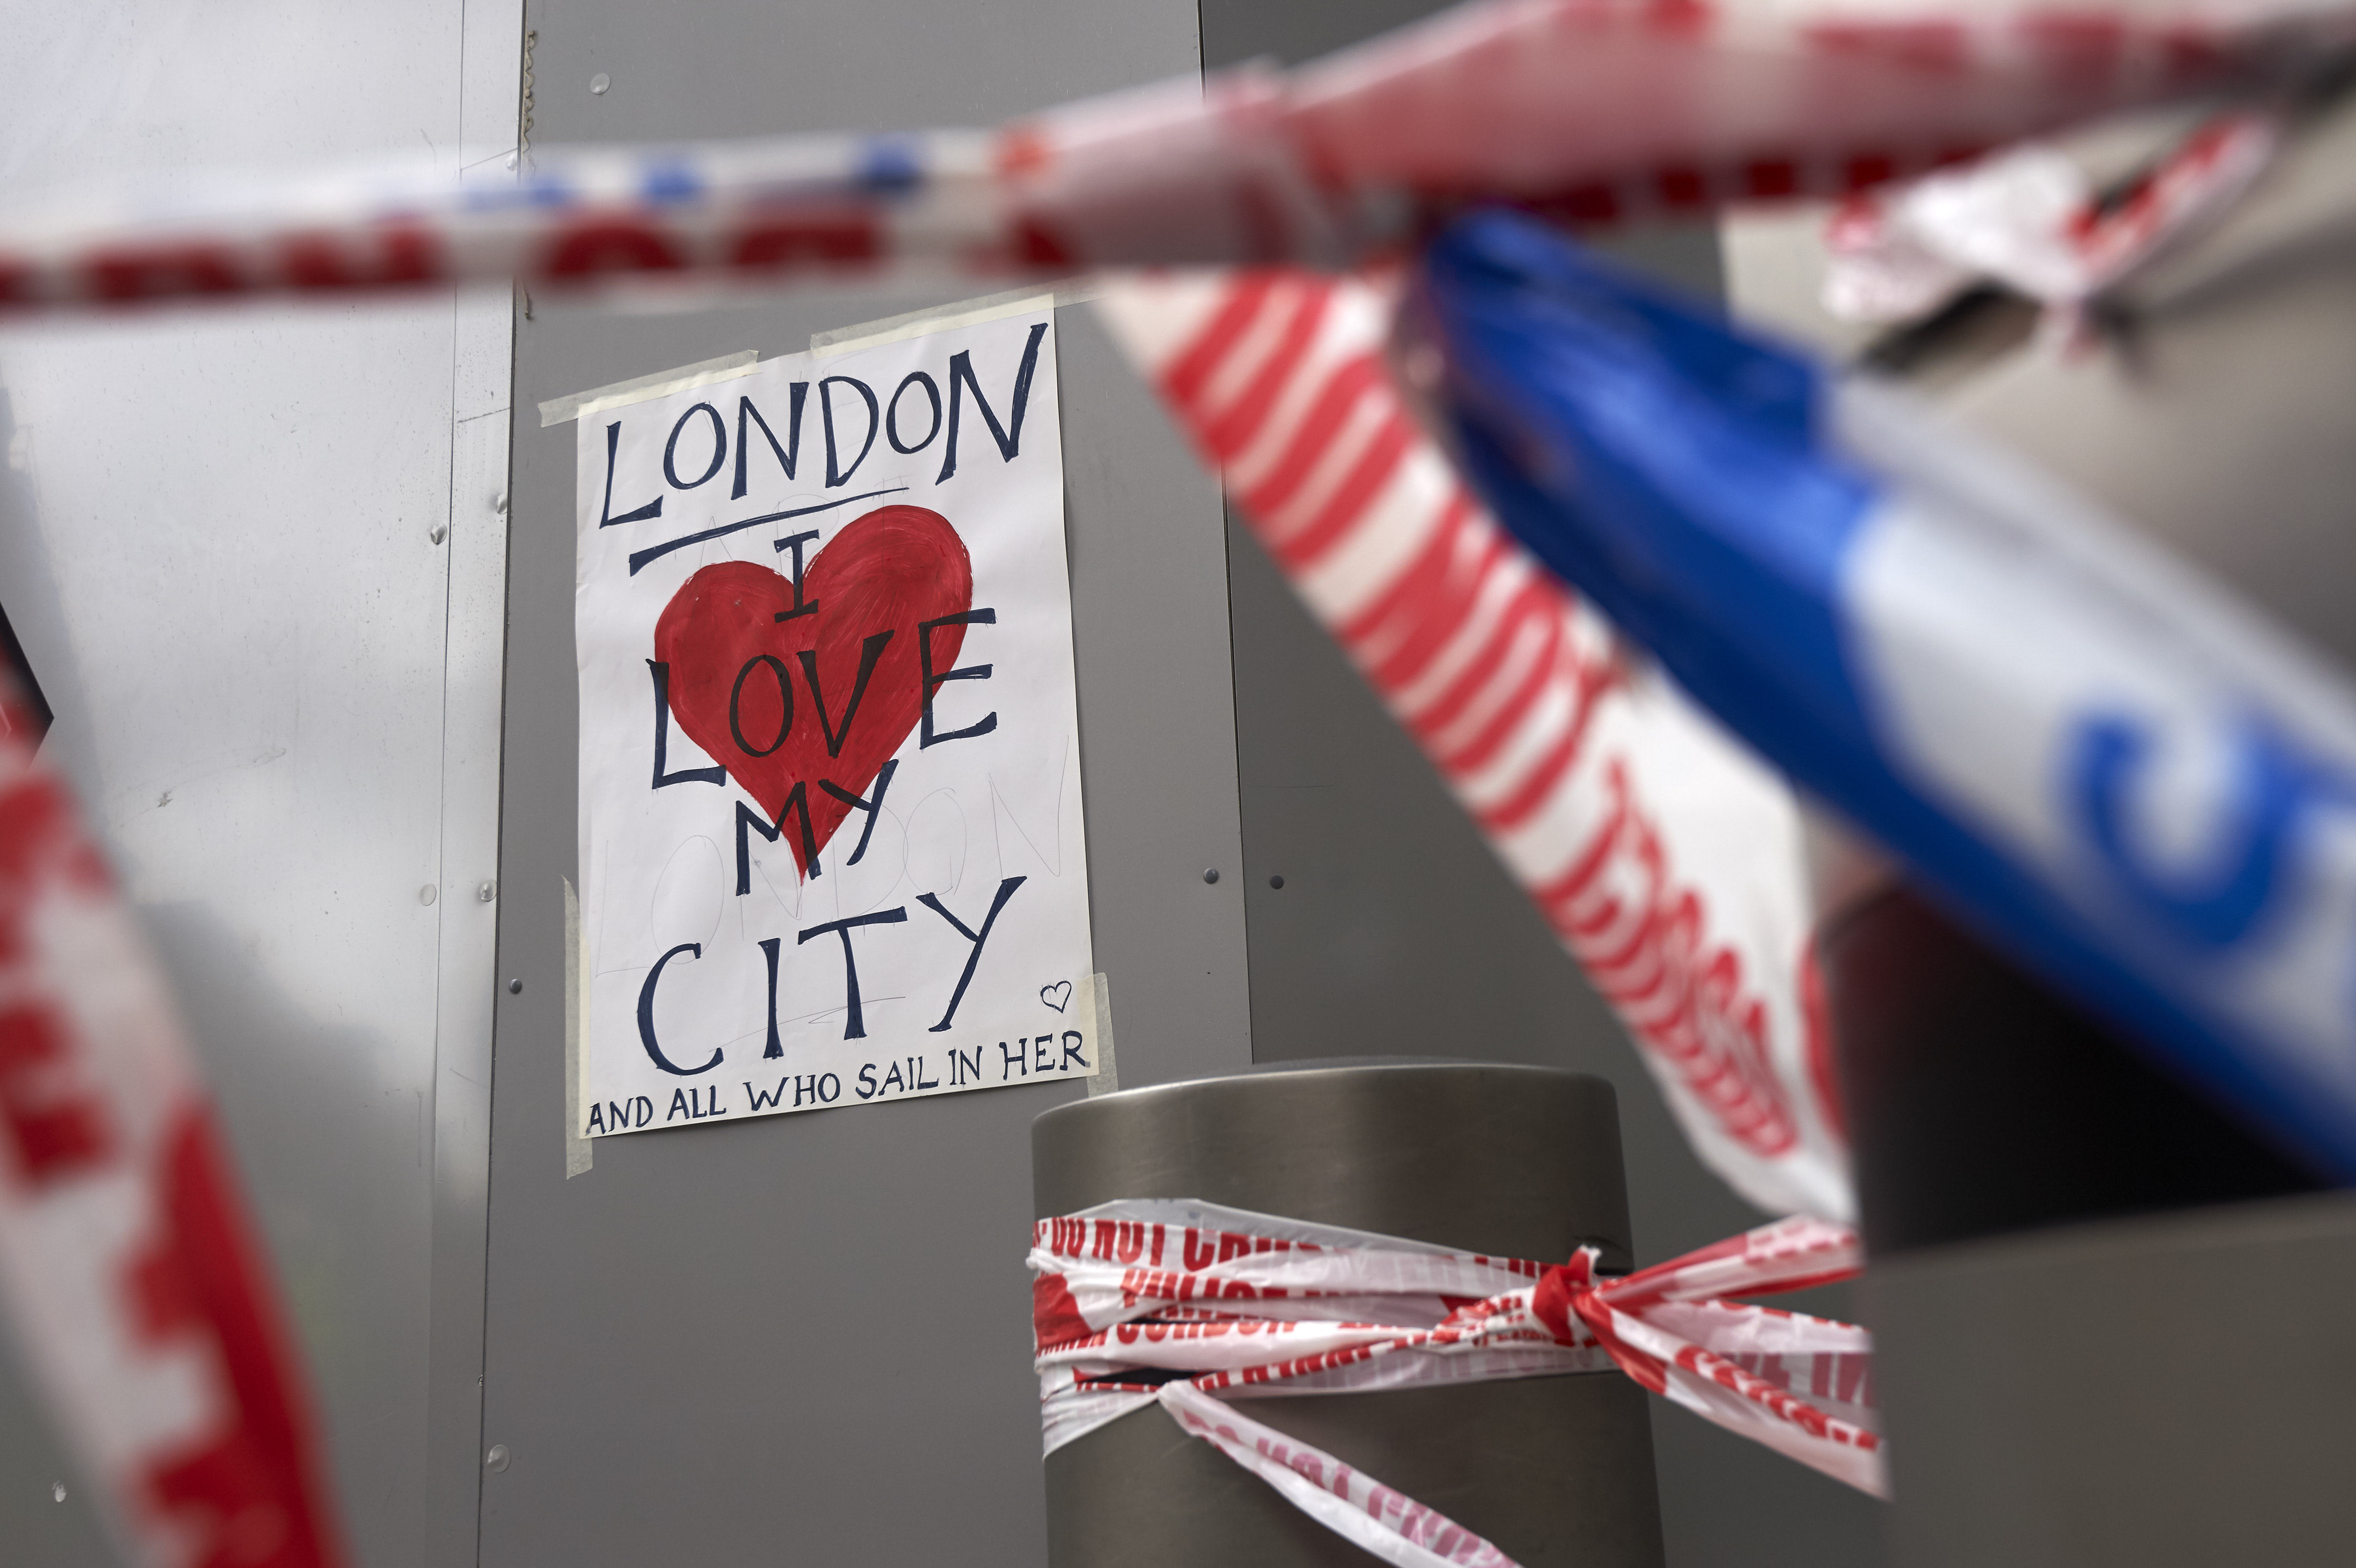 A poster in solidarity is seen on a hoarding outside London Bridge railway station in London on June 5, 2017 at the cordon near the police scene of the June 3 terror attack on London Bridge and the nearby Borough Market.